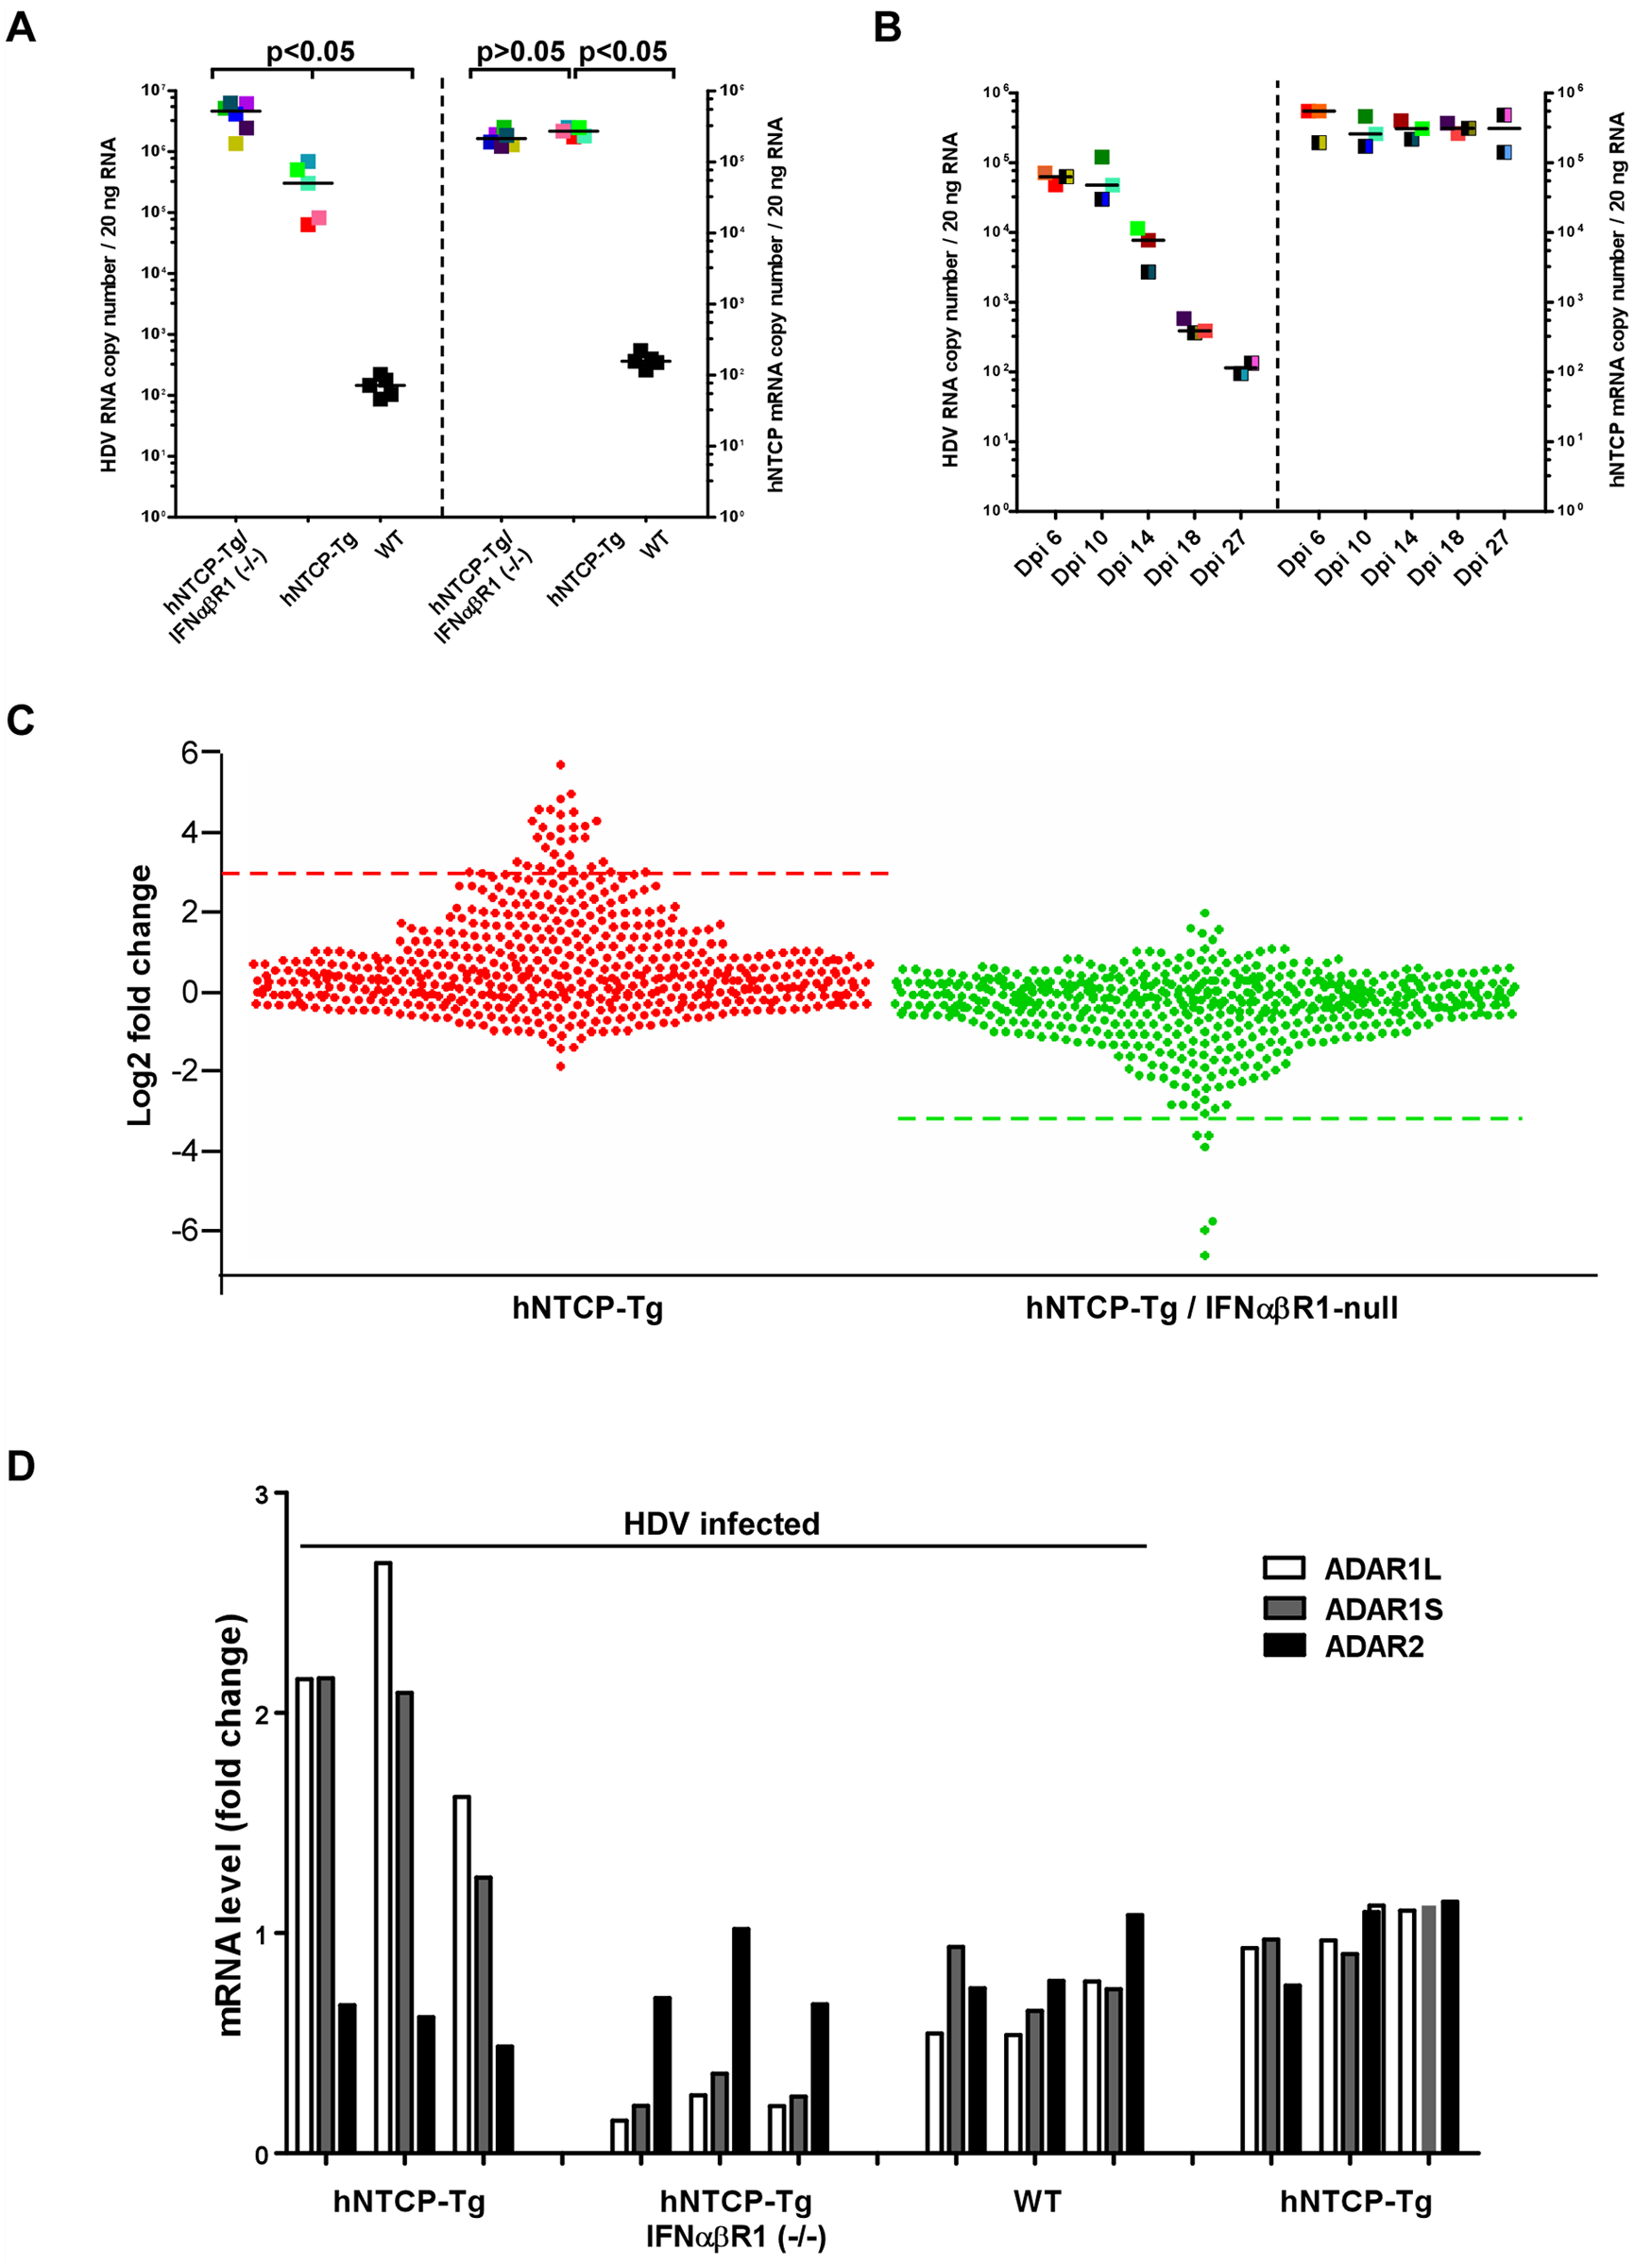 Human NTCP transgenic mice homozygous for IFNα/βR1-/- cleared HDV infection.